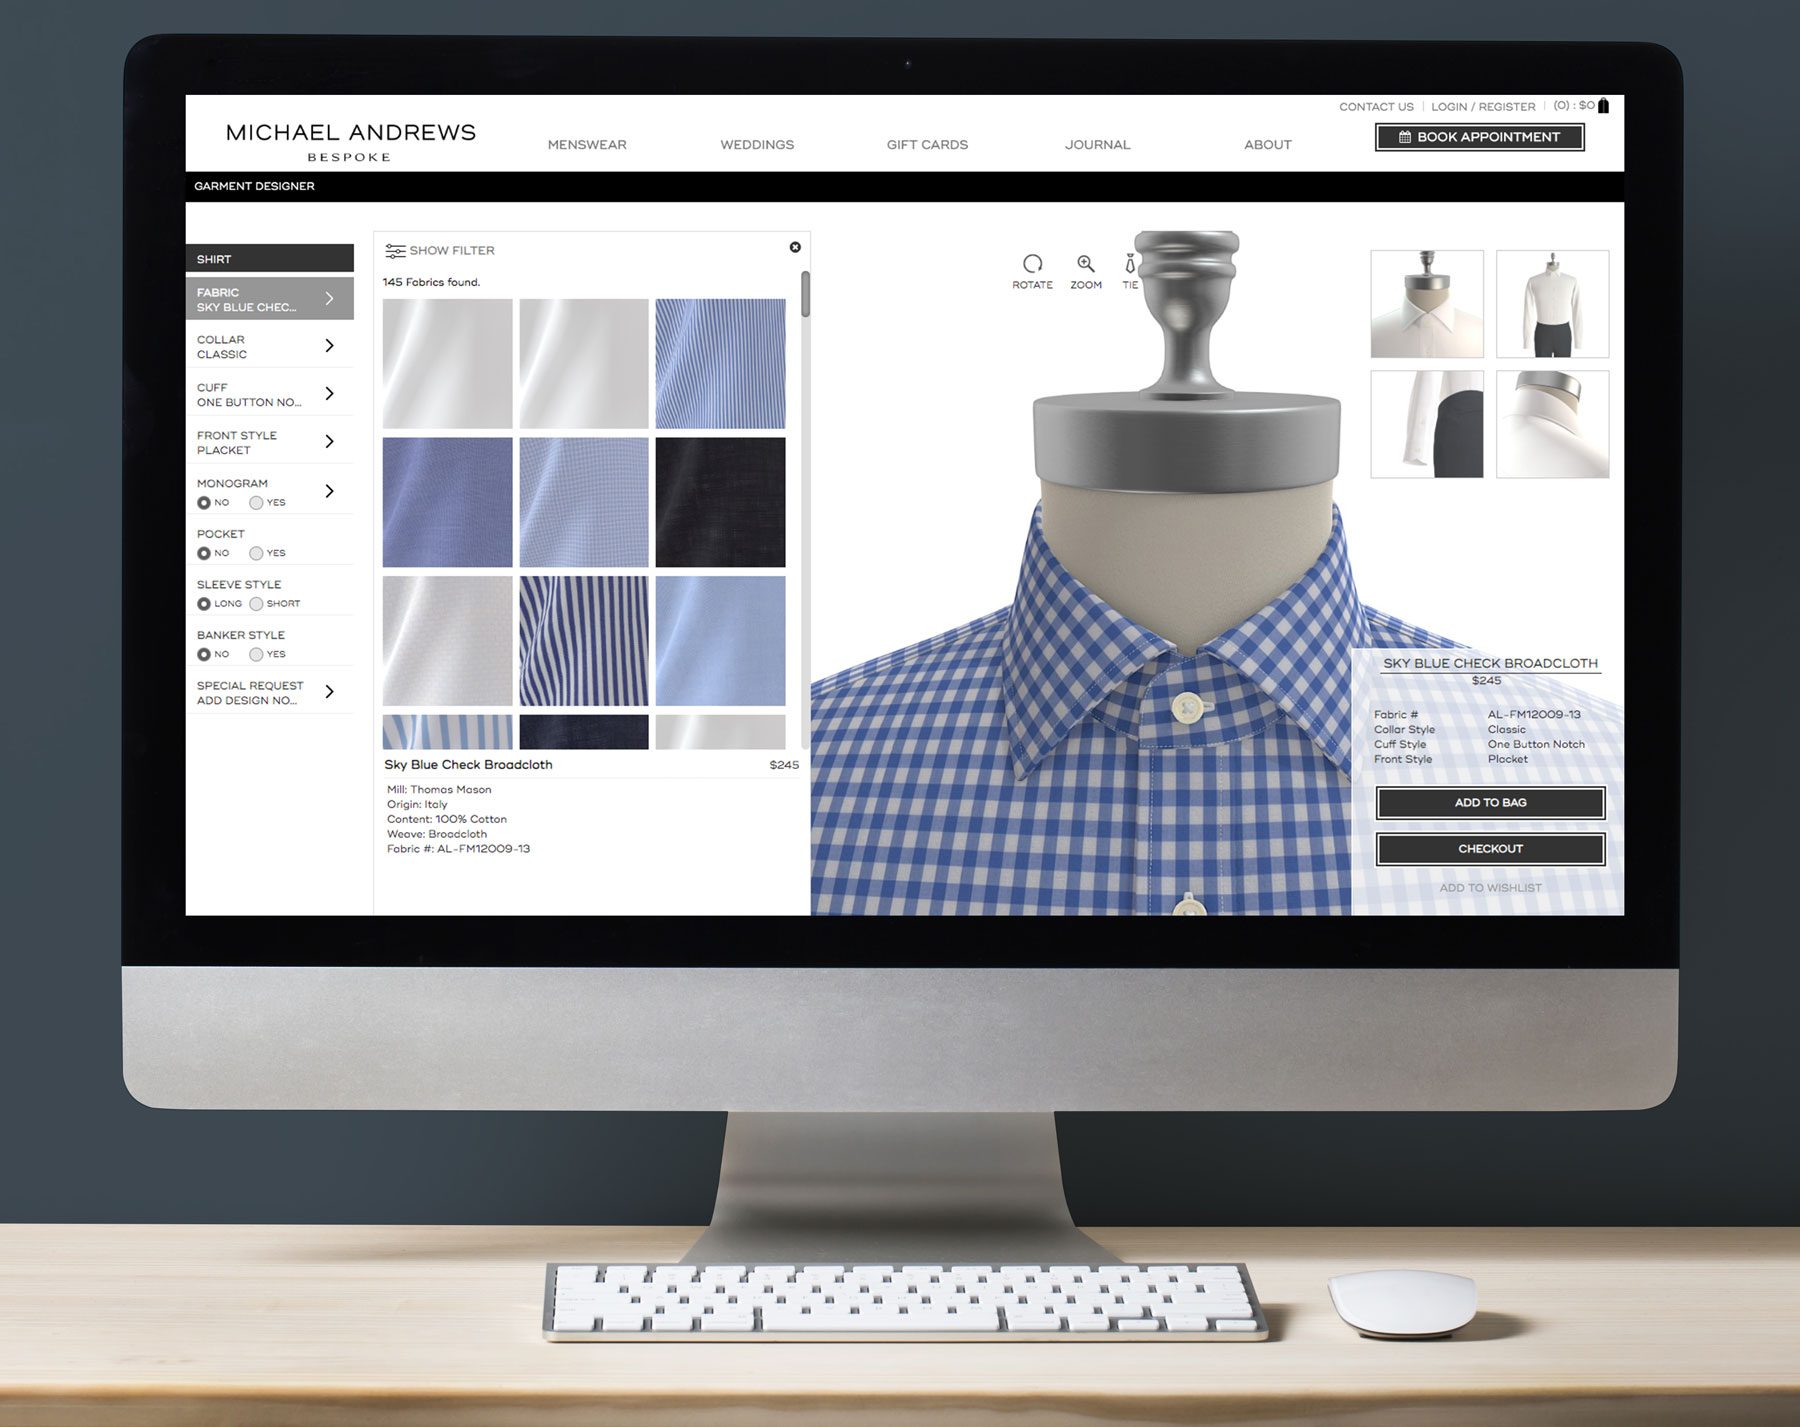 Design the user flow, experience, and visual layout of their newly implemented custom clothing configurator.